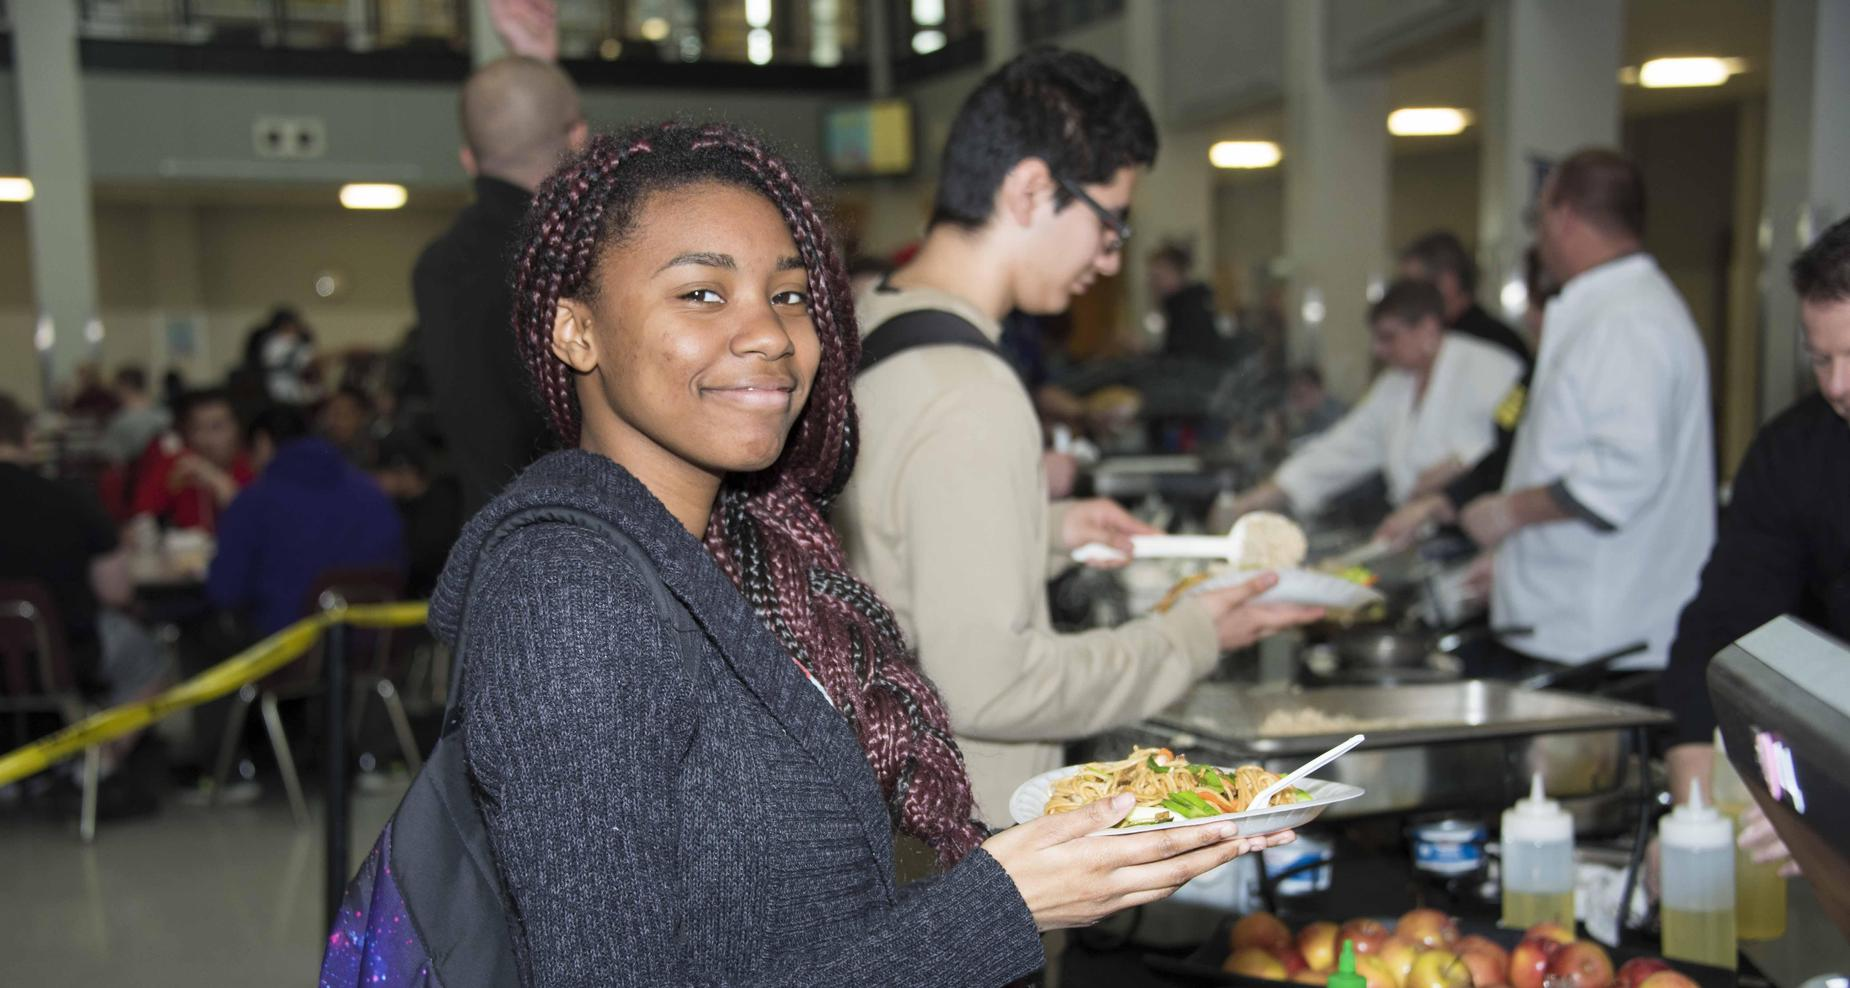 student smiling in lunch line